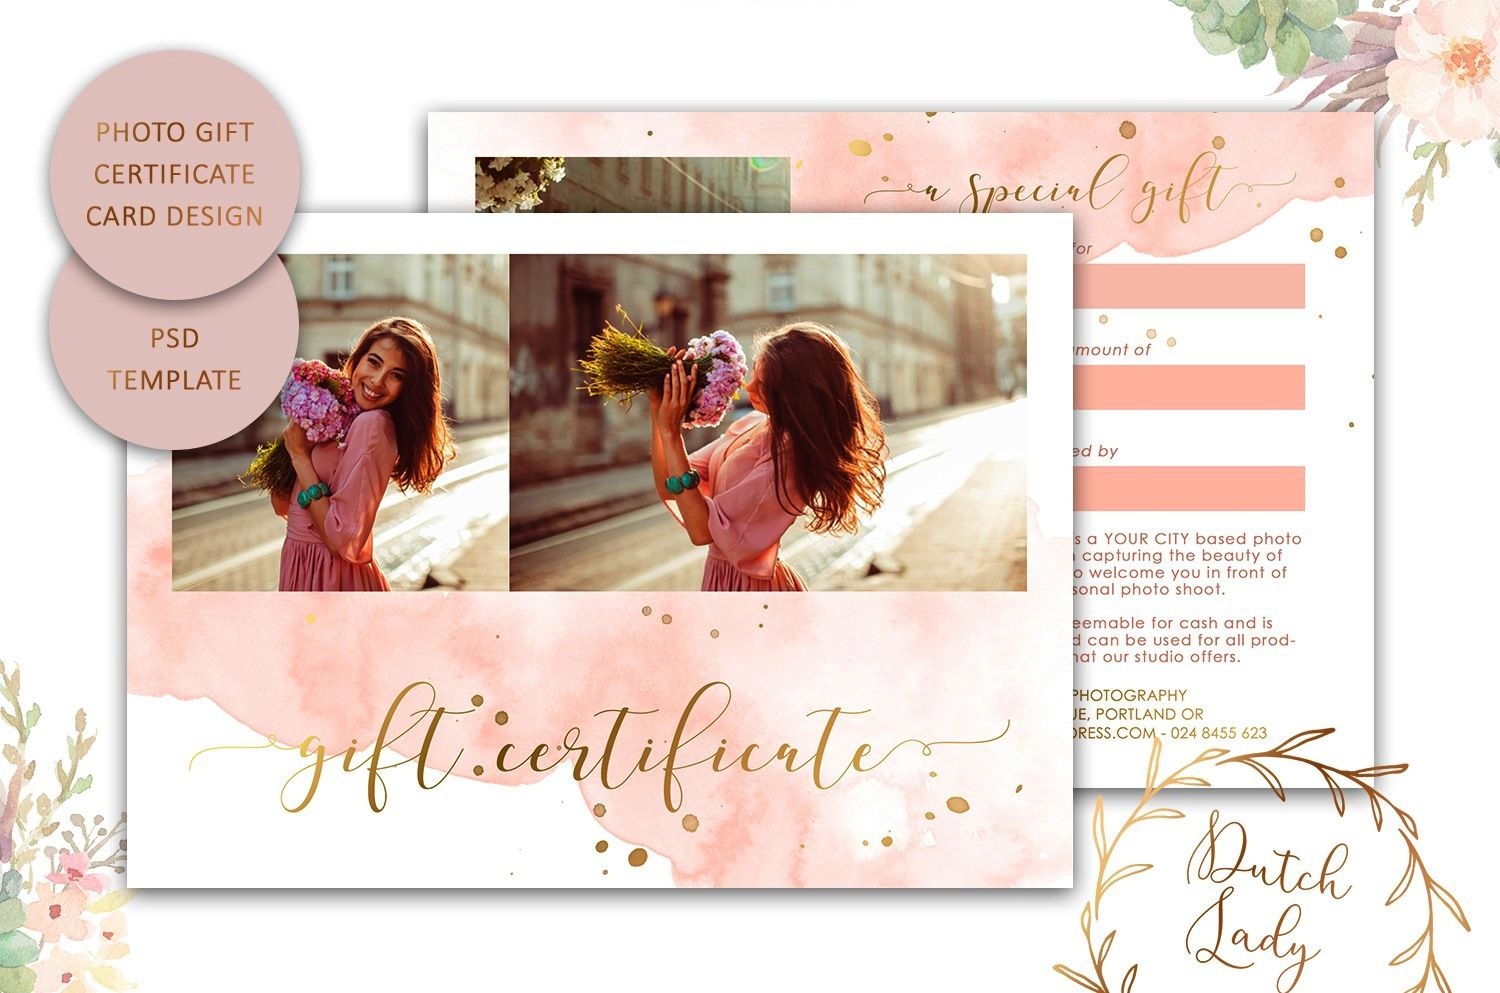 009 Top Photography Session Gift Certificate Template Picture  Photo FreeFull